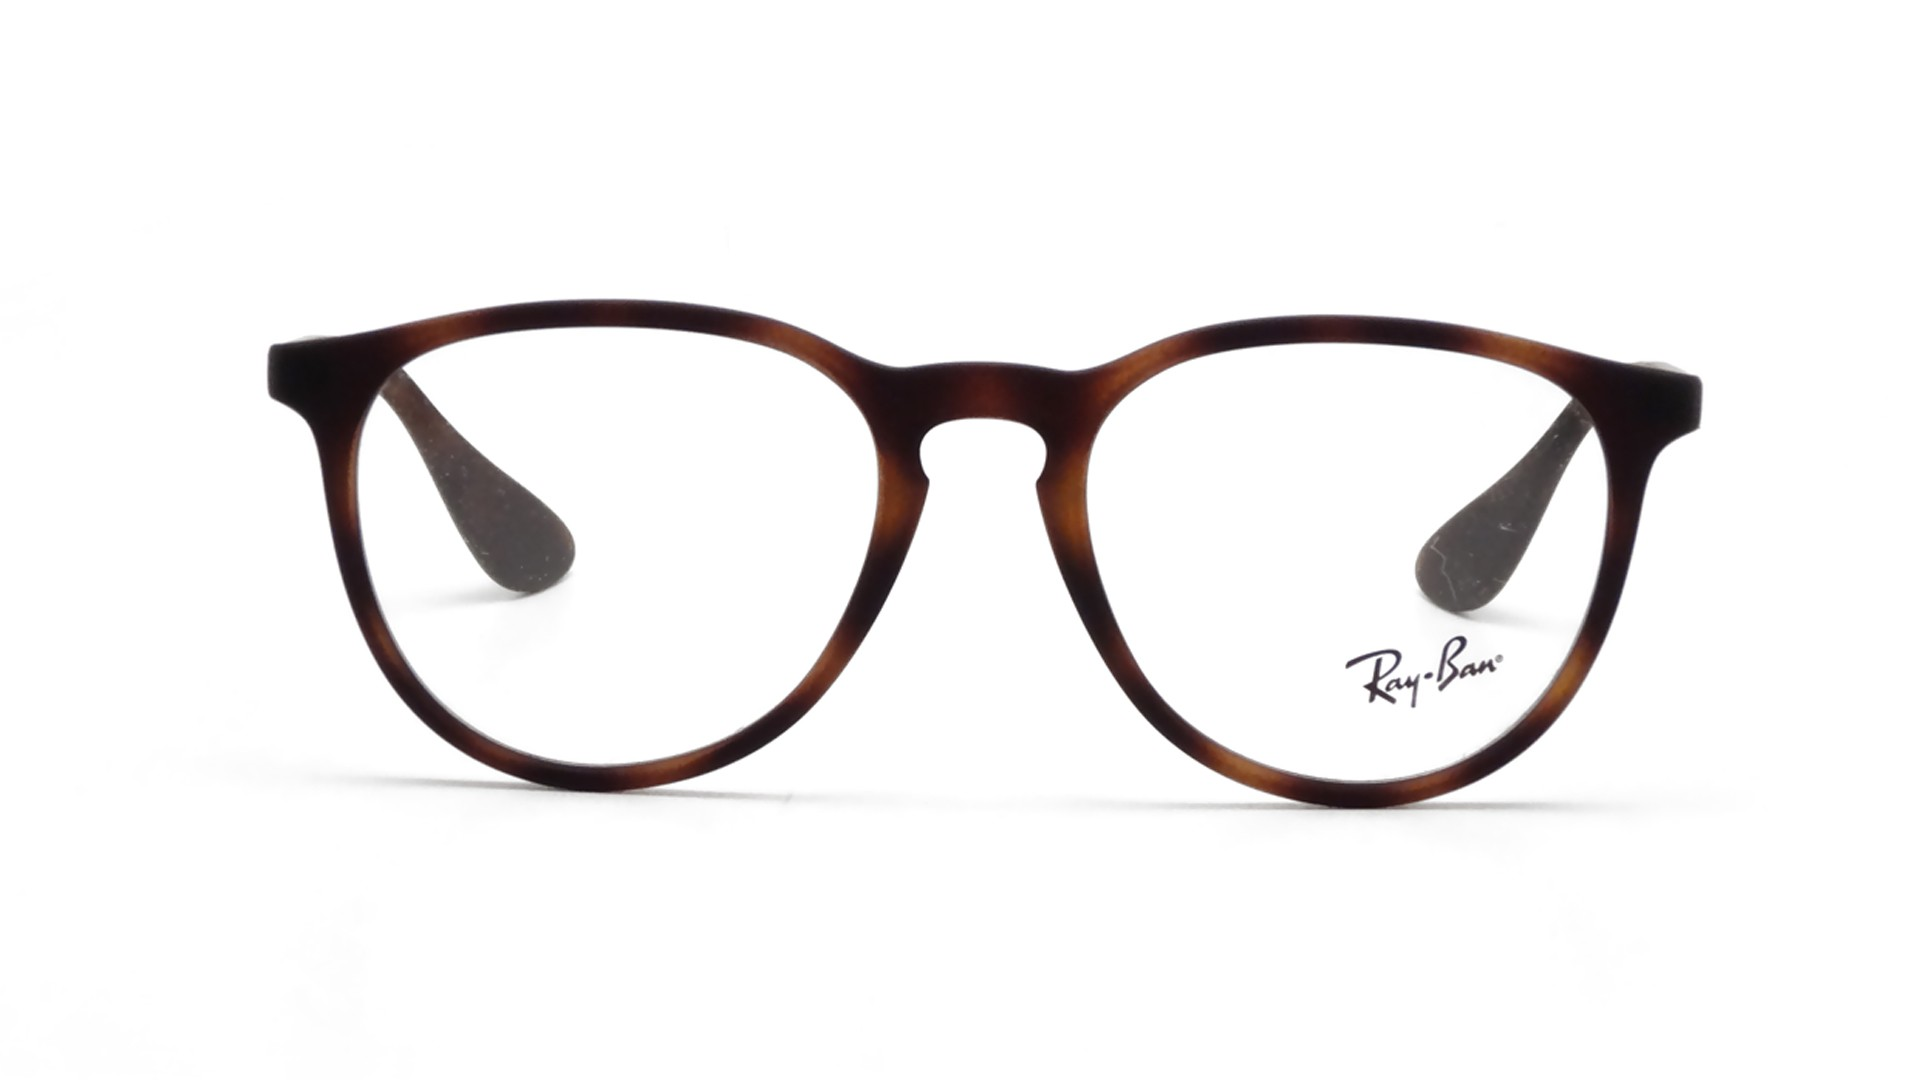 Eyeglass Frame Rep Jobs : should i get a pair of ray ban prescription eyeglasses ...